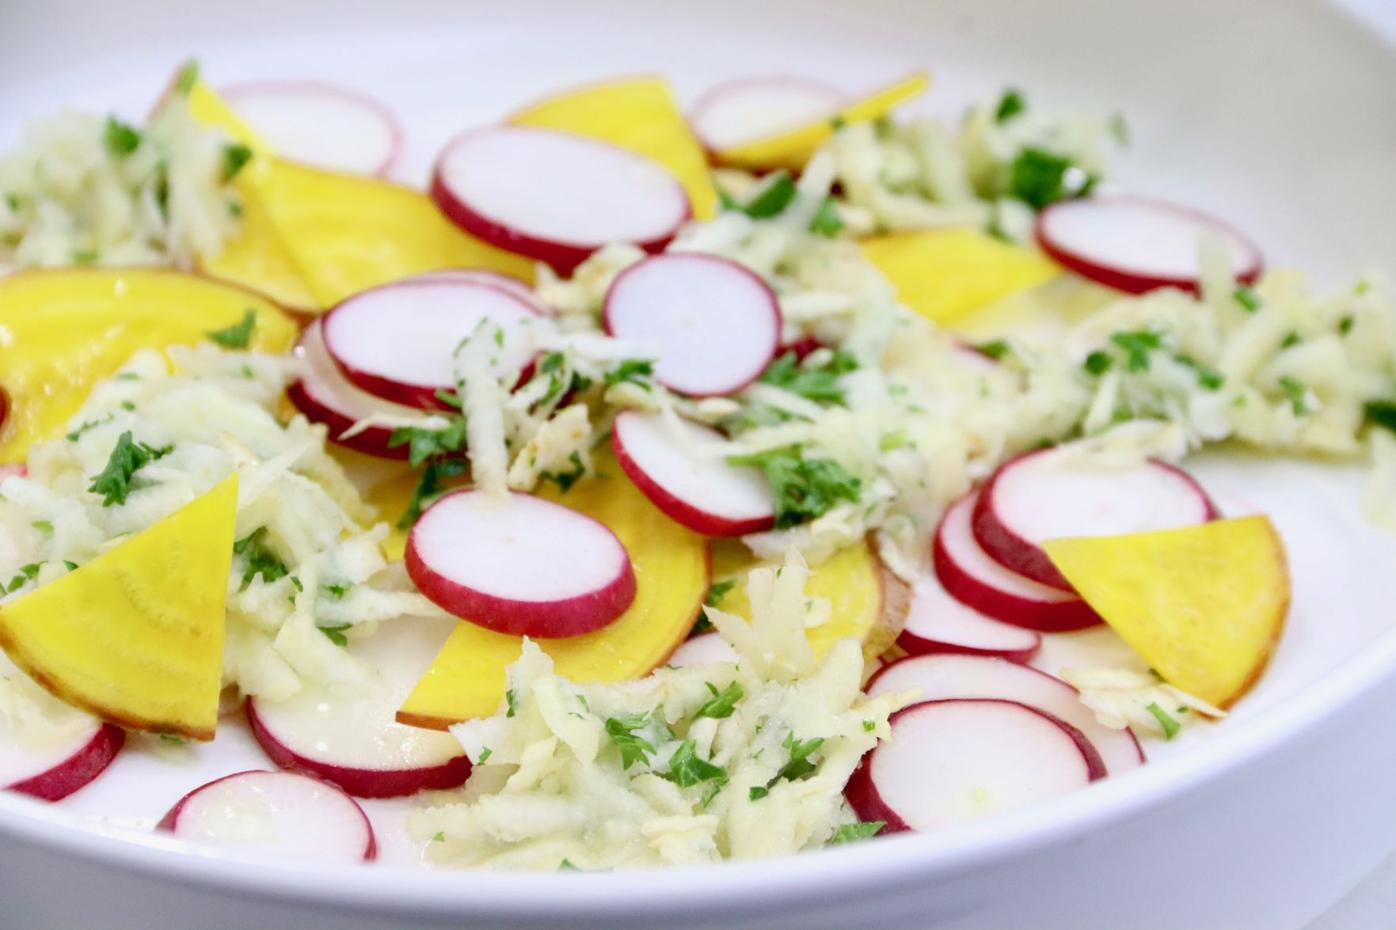 Grated Celery Root Salad with Golden Beets and Radishes